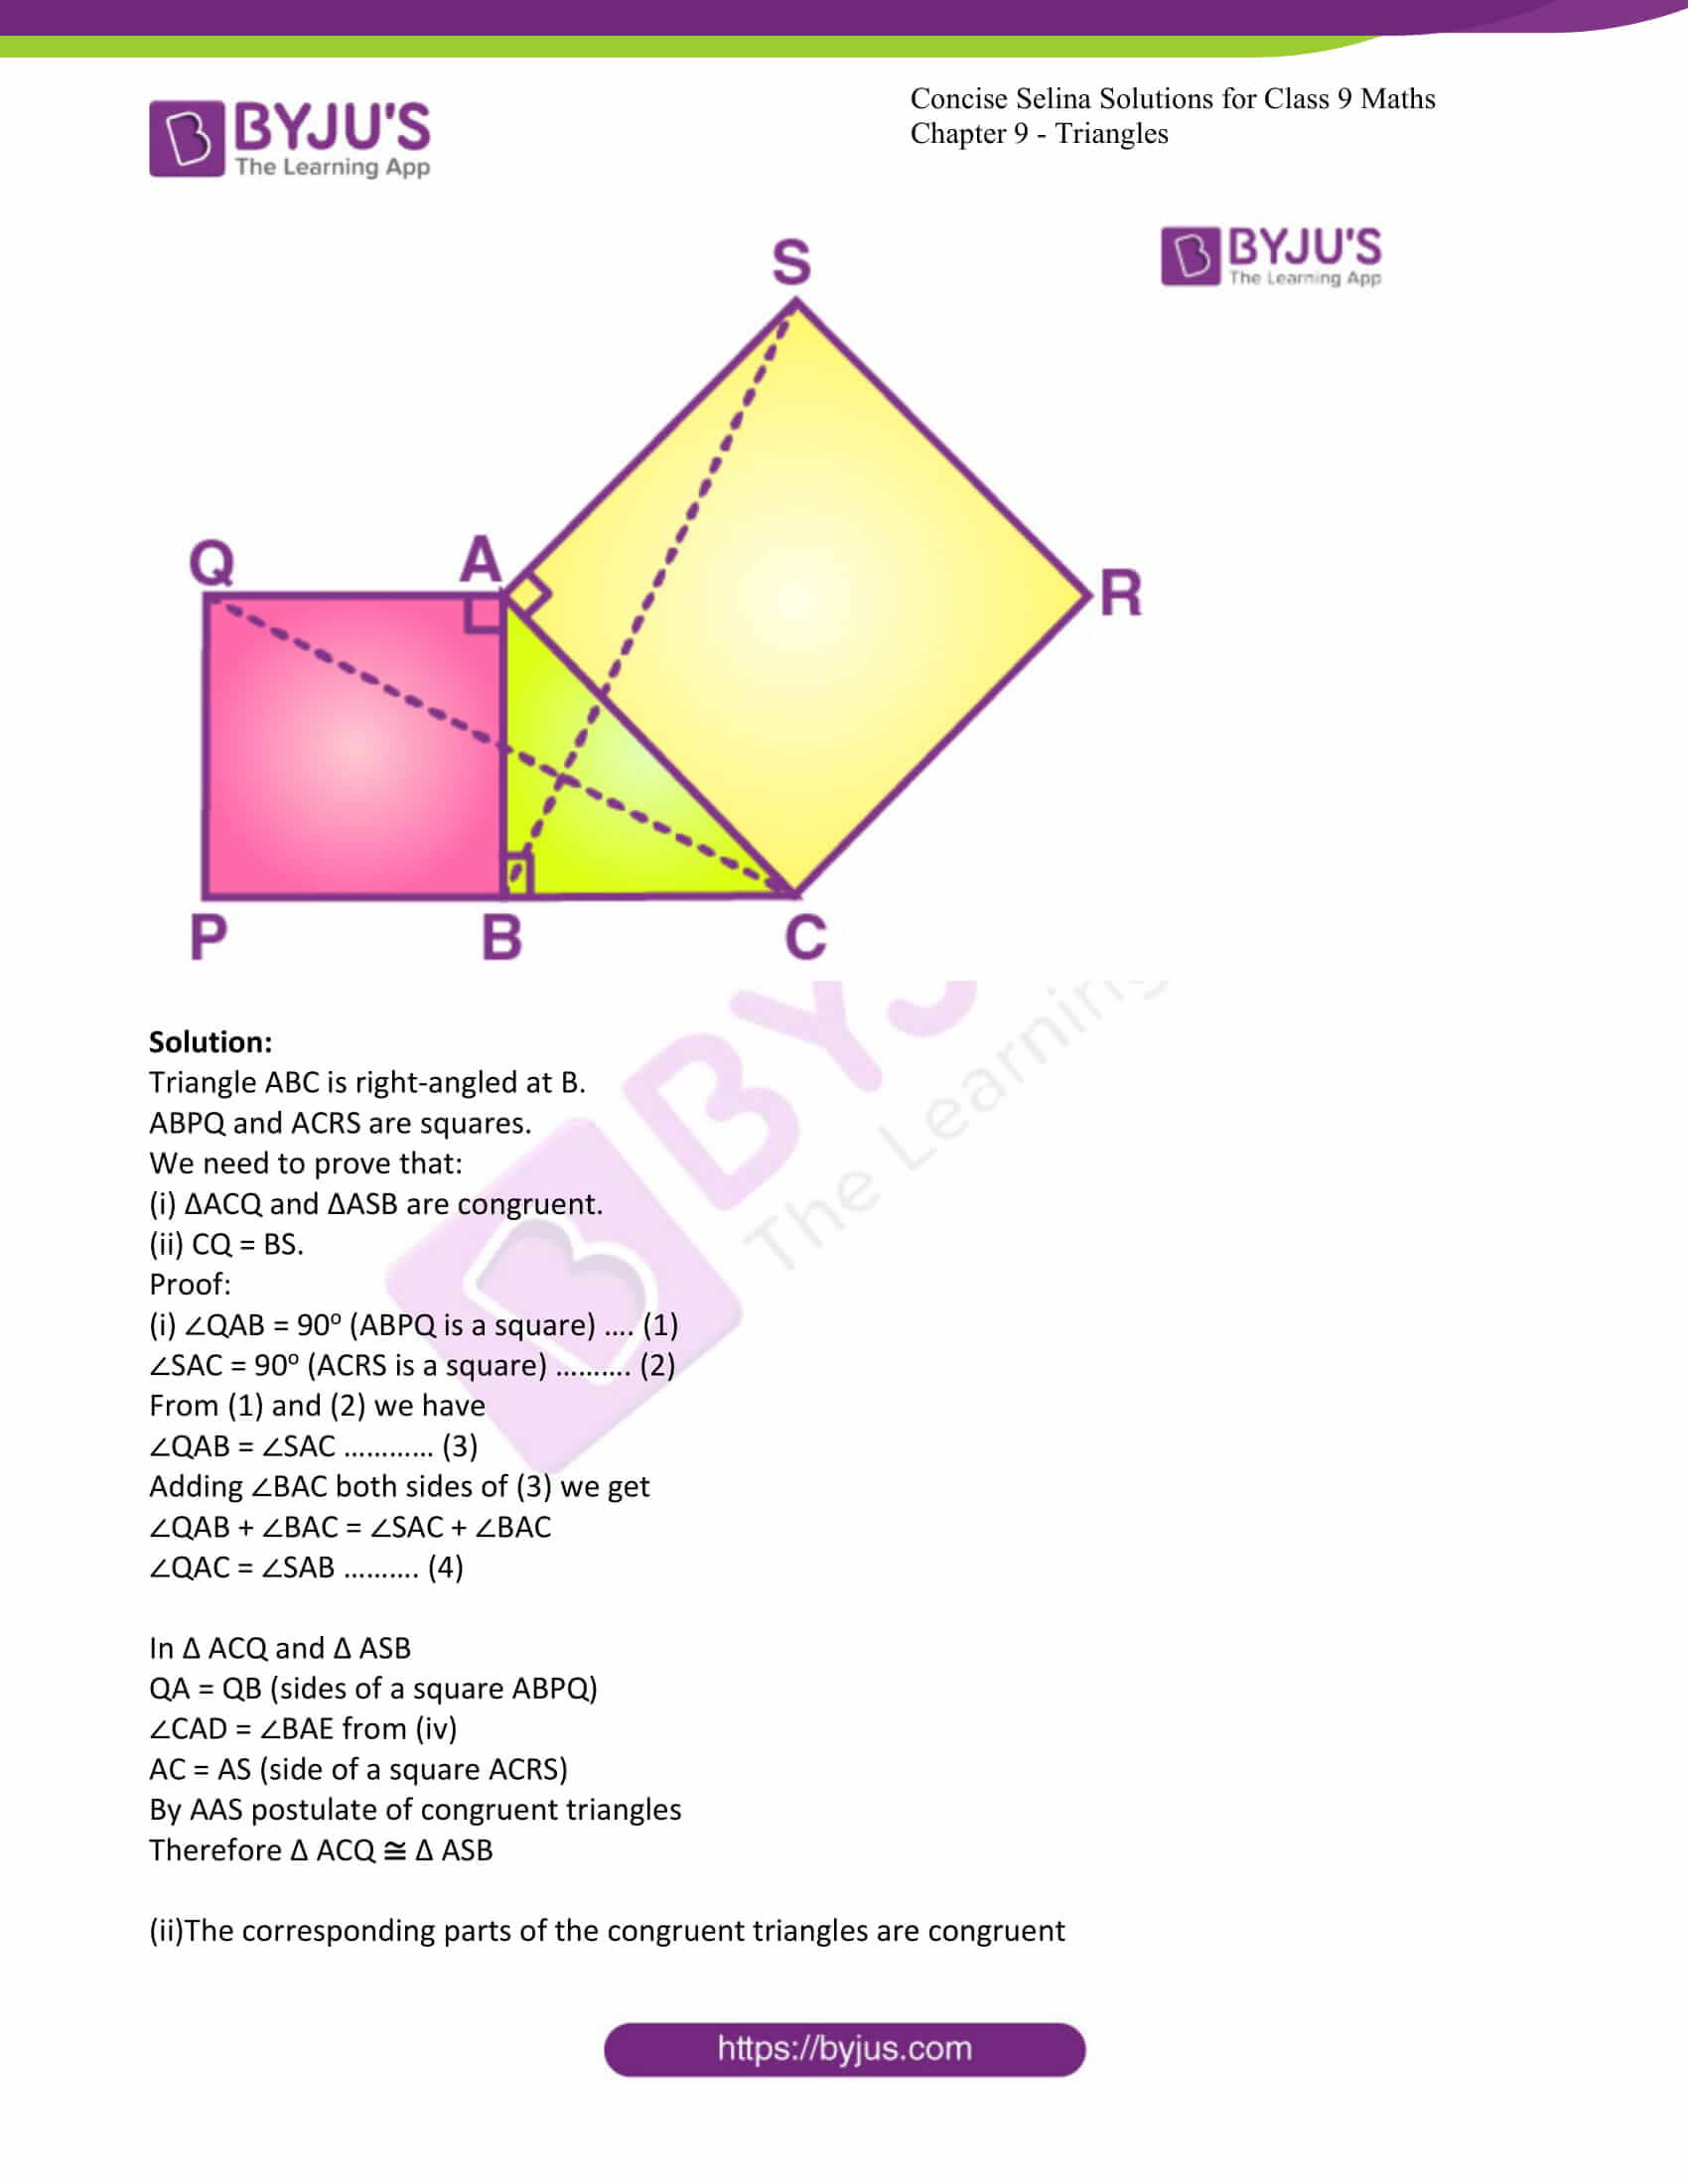 icse class 9 maths may10 selina solutions chapter 9 triangles 22